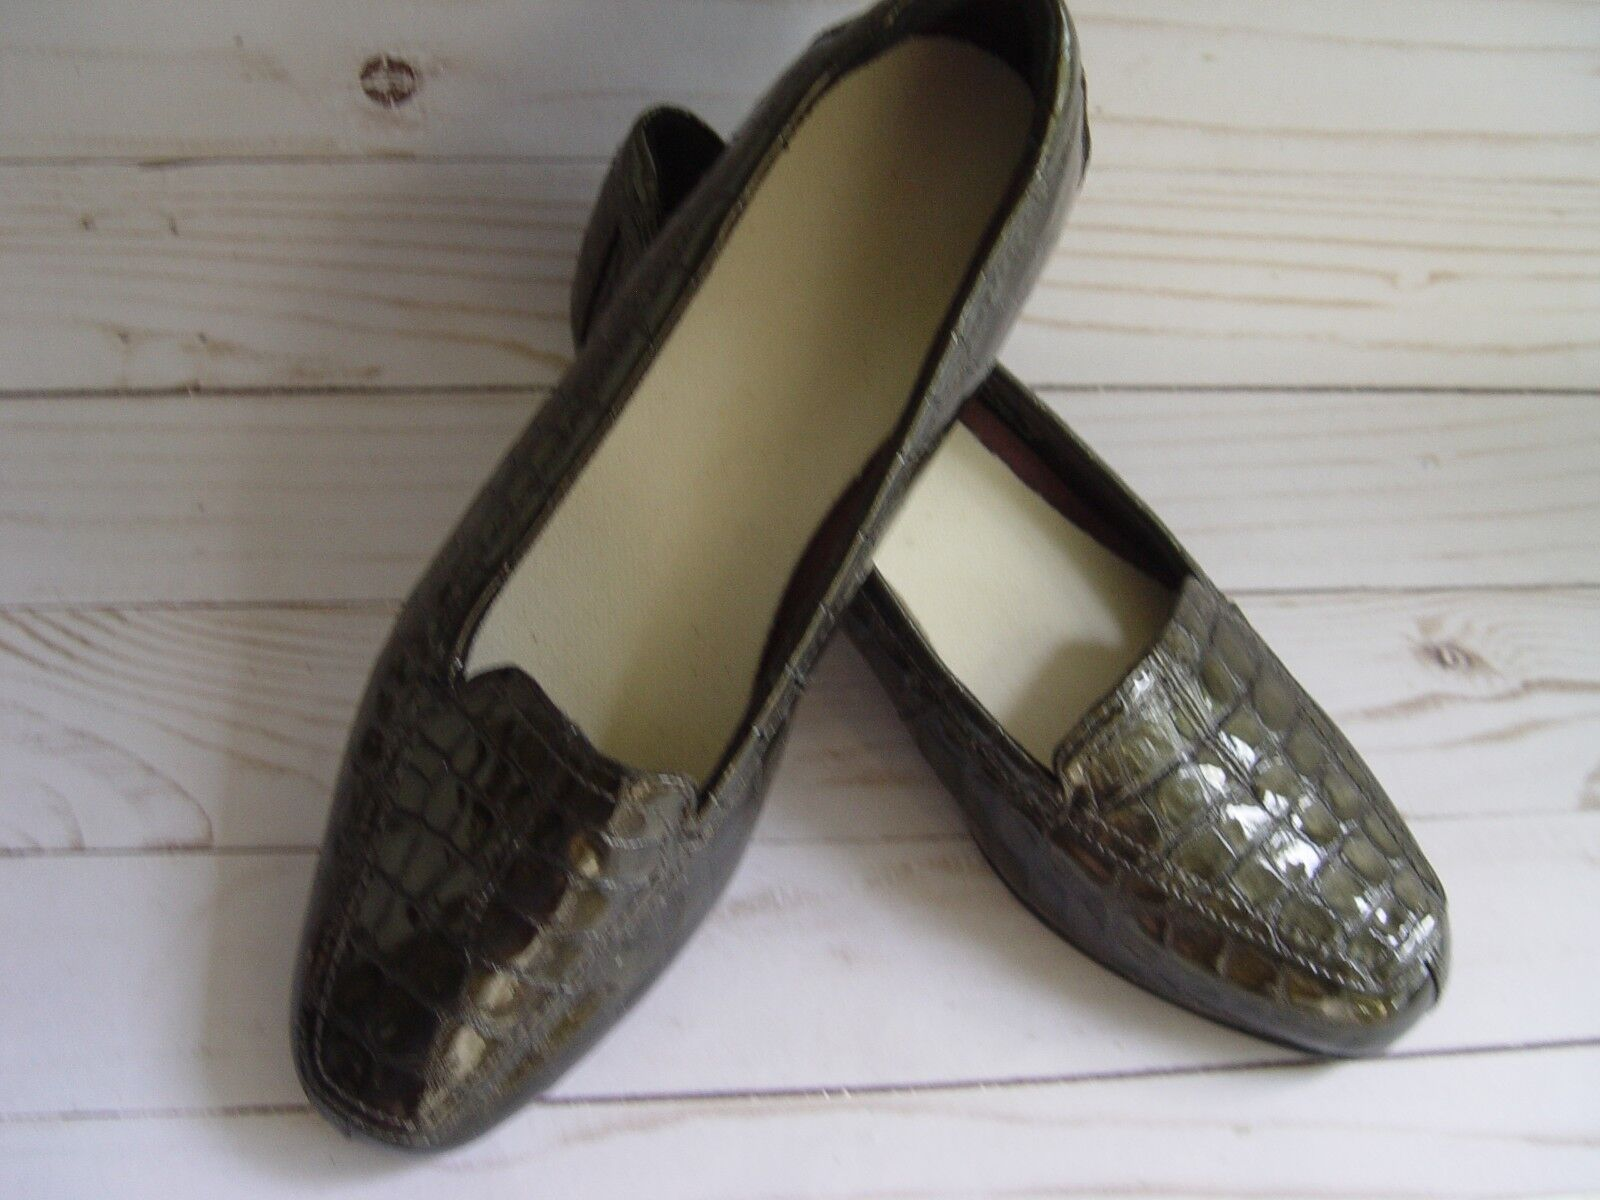 CLARK LOAFER 7M dark metallic green genuine patent leather leather leather excellent + cond 3badb7